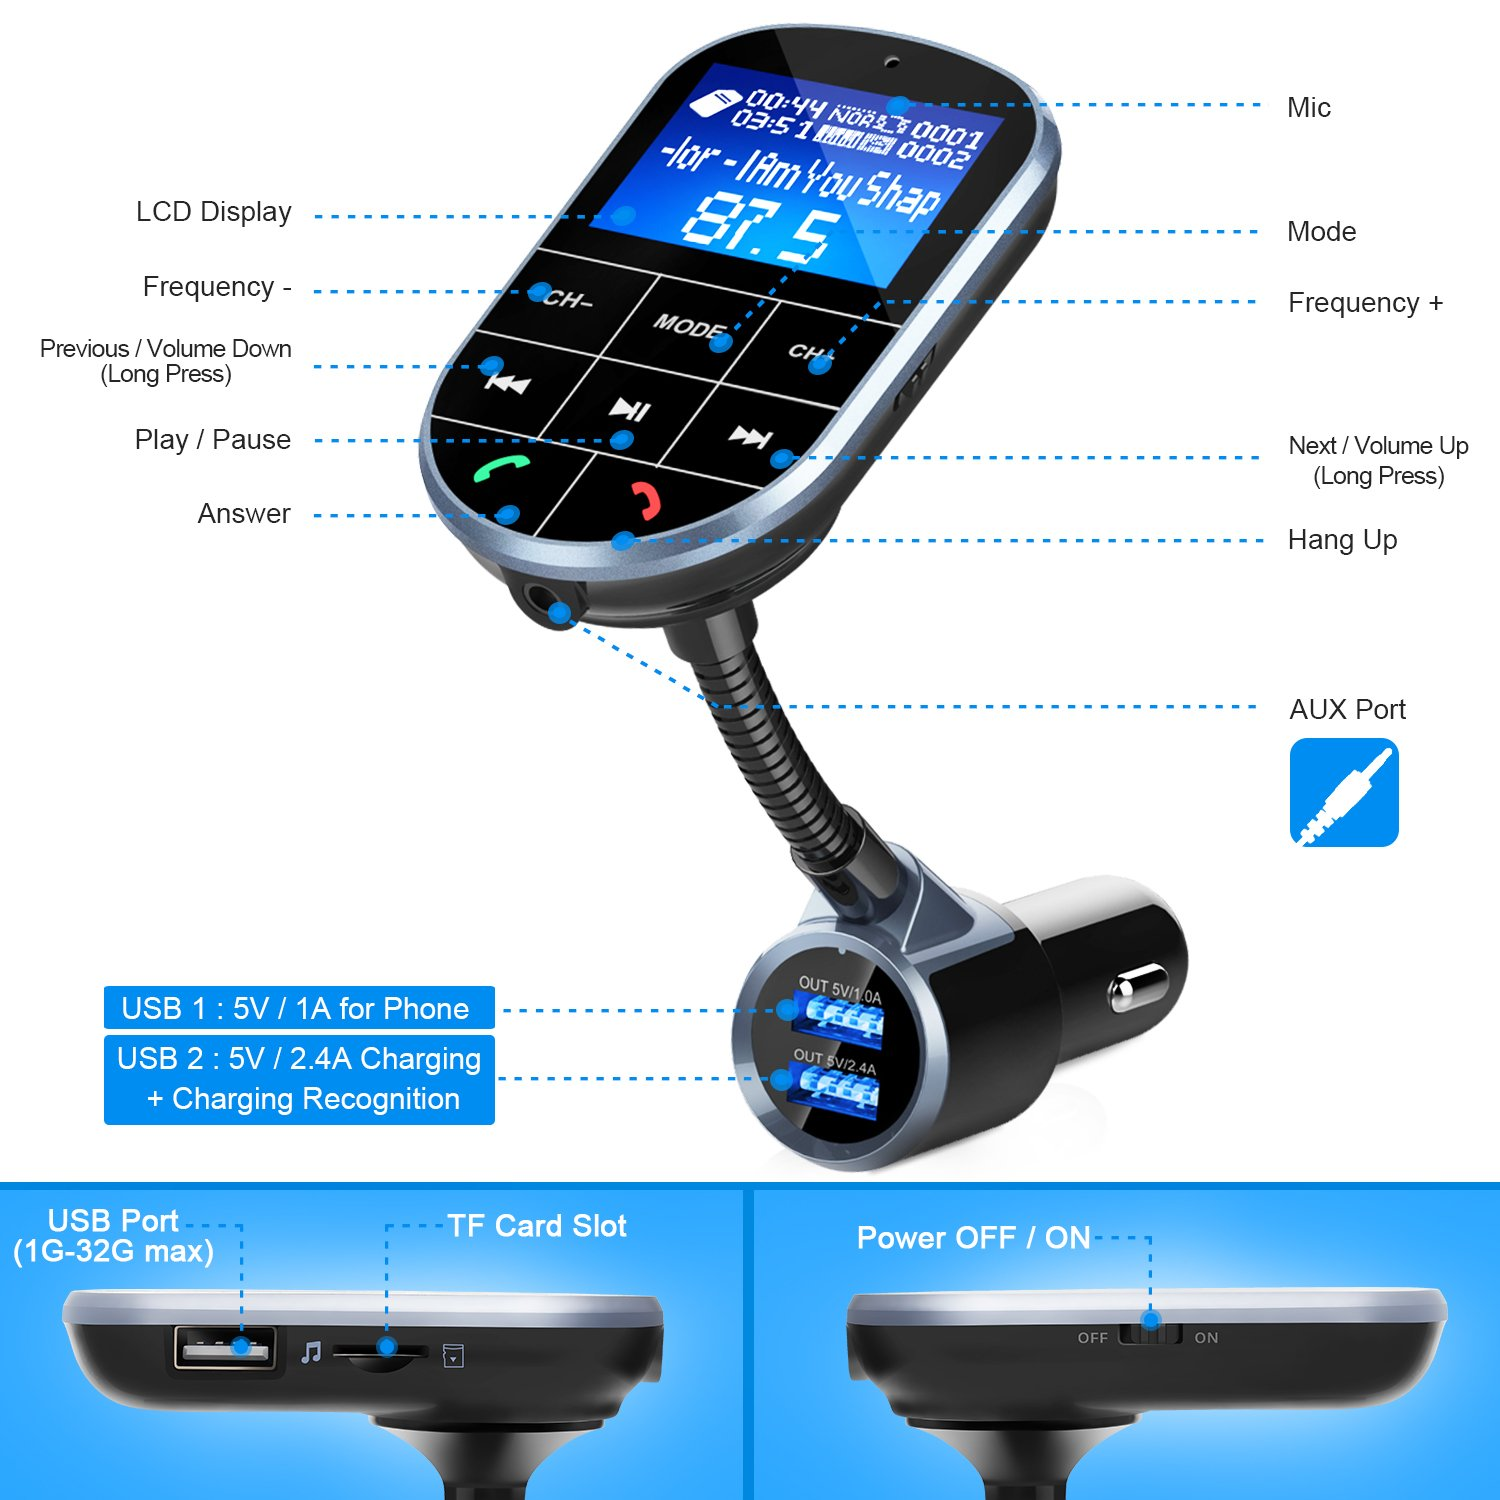 Bluetooth FM Transmitter For Car, Wireless Bluetooth FM Radio Adapter 2 Ports USB Car Charger 5V/2.4A&1A with Hands-Free Calling, Micro SD Card Aux Output by IMDEN (Image #3)